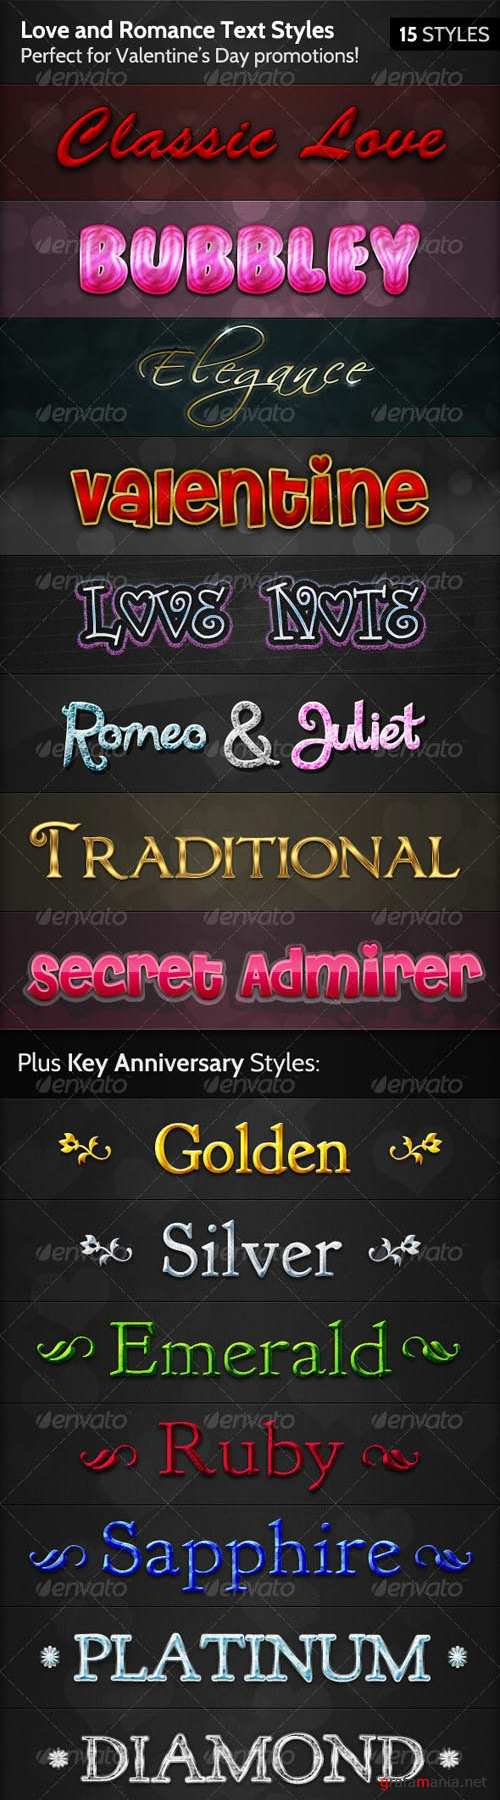 GraphicRiver Love and Romance Text Styles